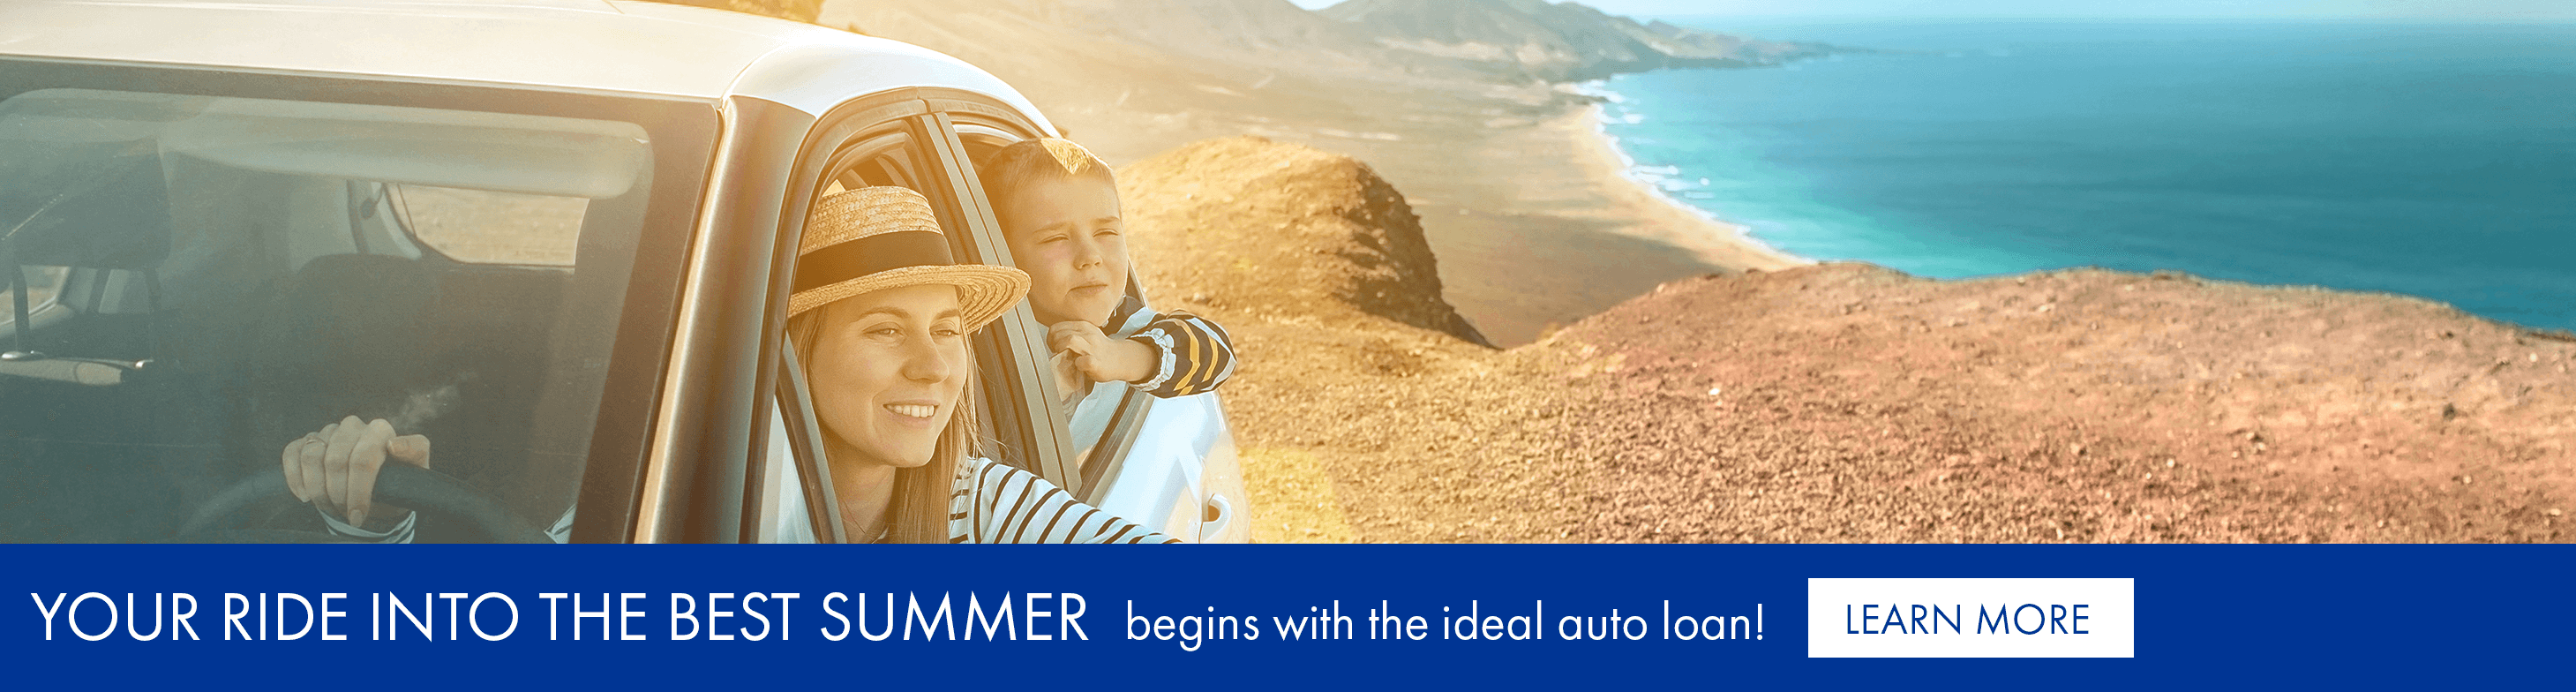 Your ride into the best summer begins with the ideal auto loan!